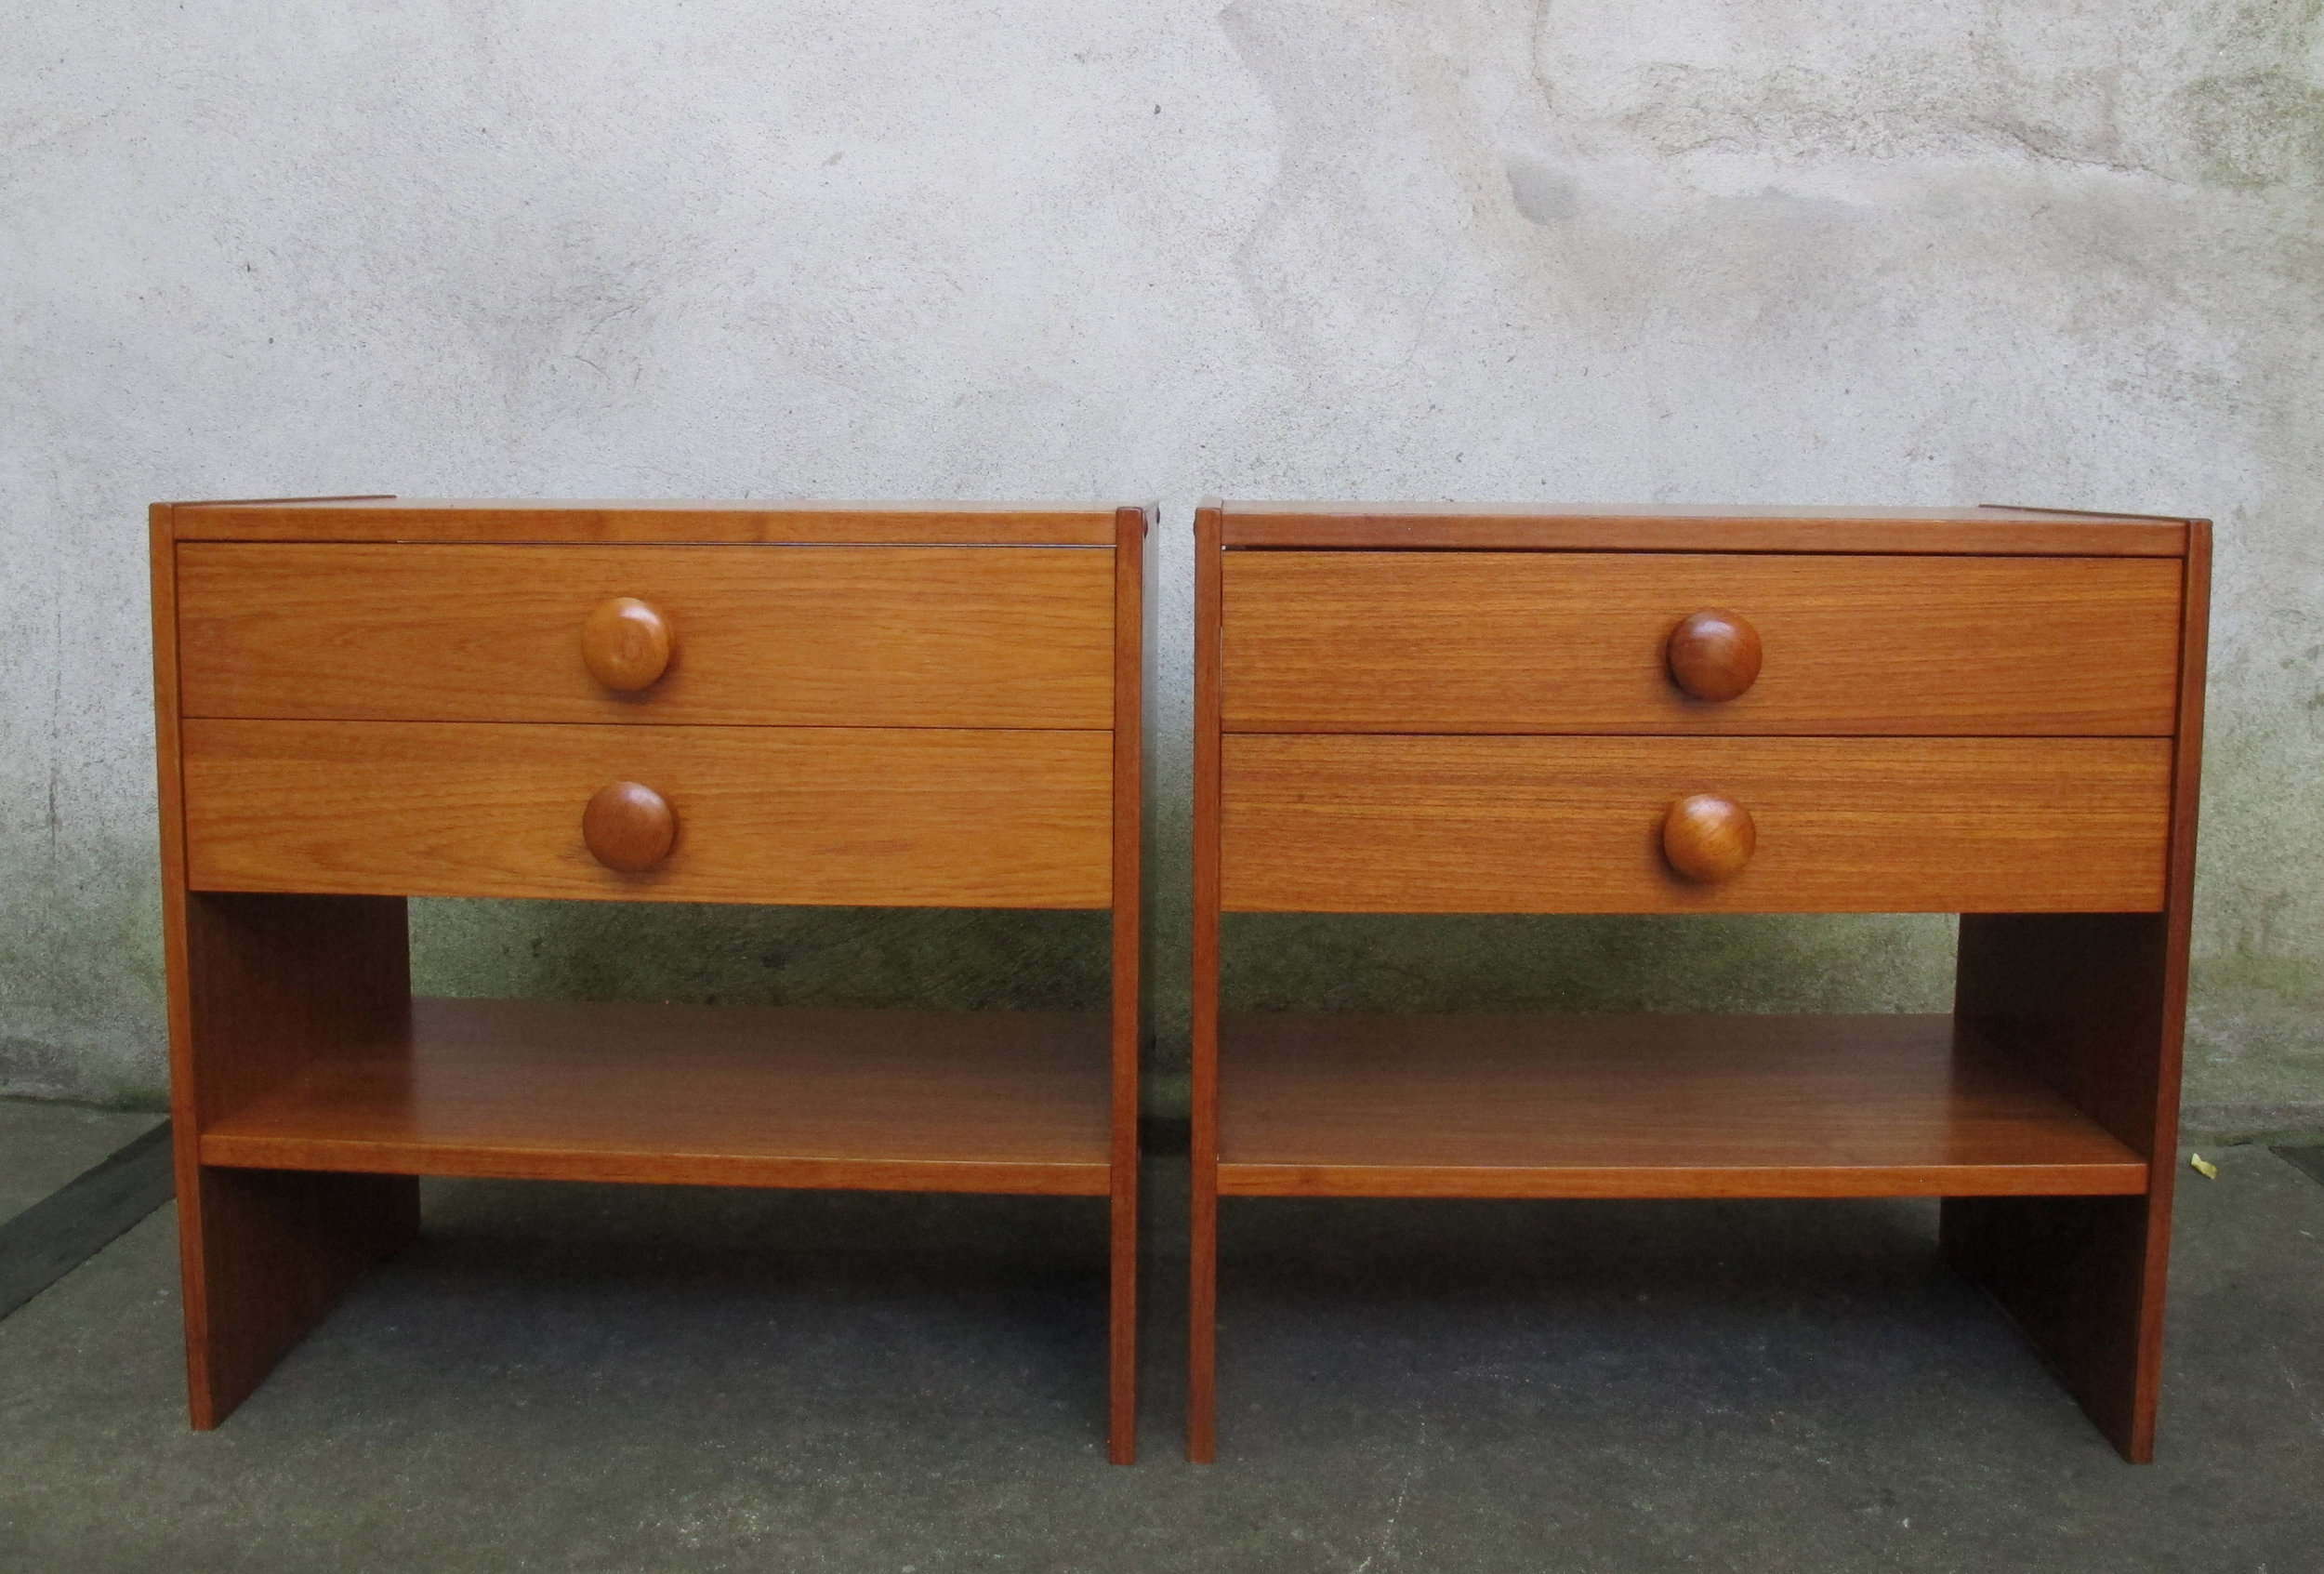 PAIR OF DANISH MODERN STYLE TEAK NIGHTSTANDS